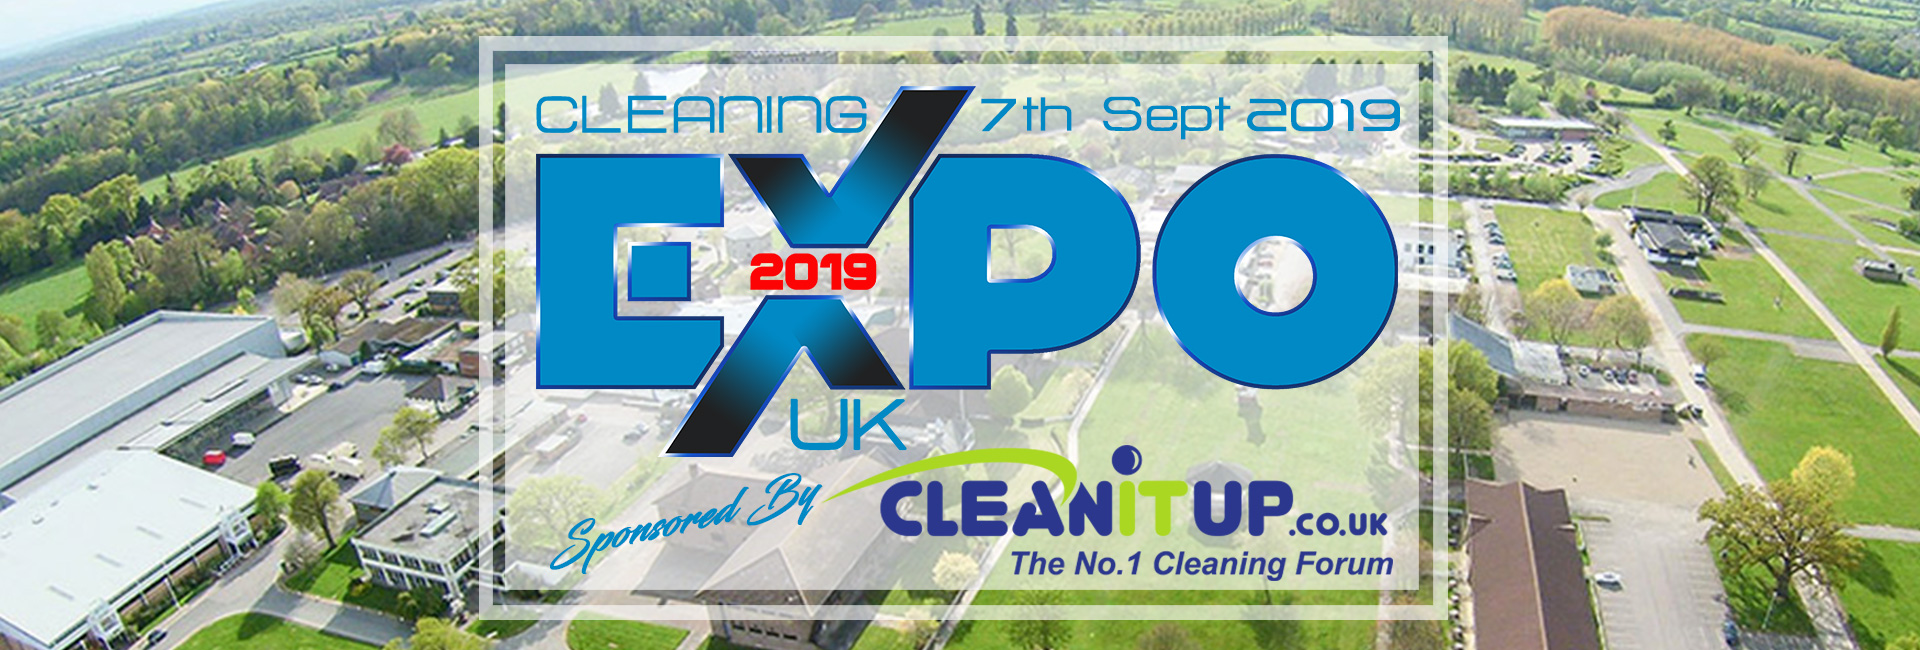 naec stoneleigh cleaning expo 2019 ciu